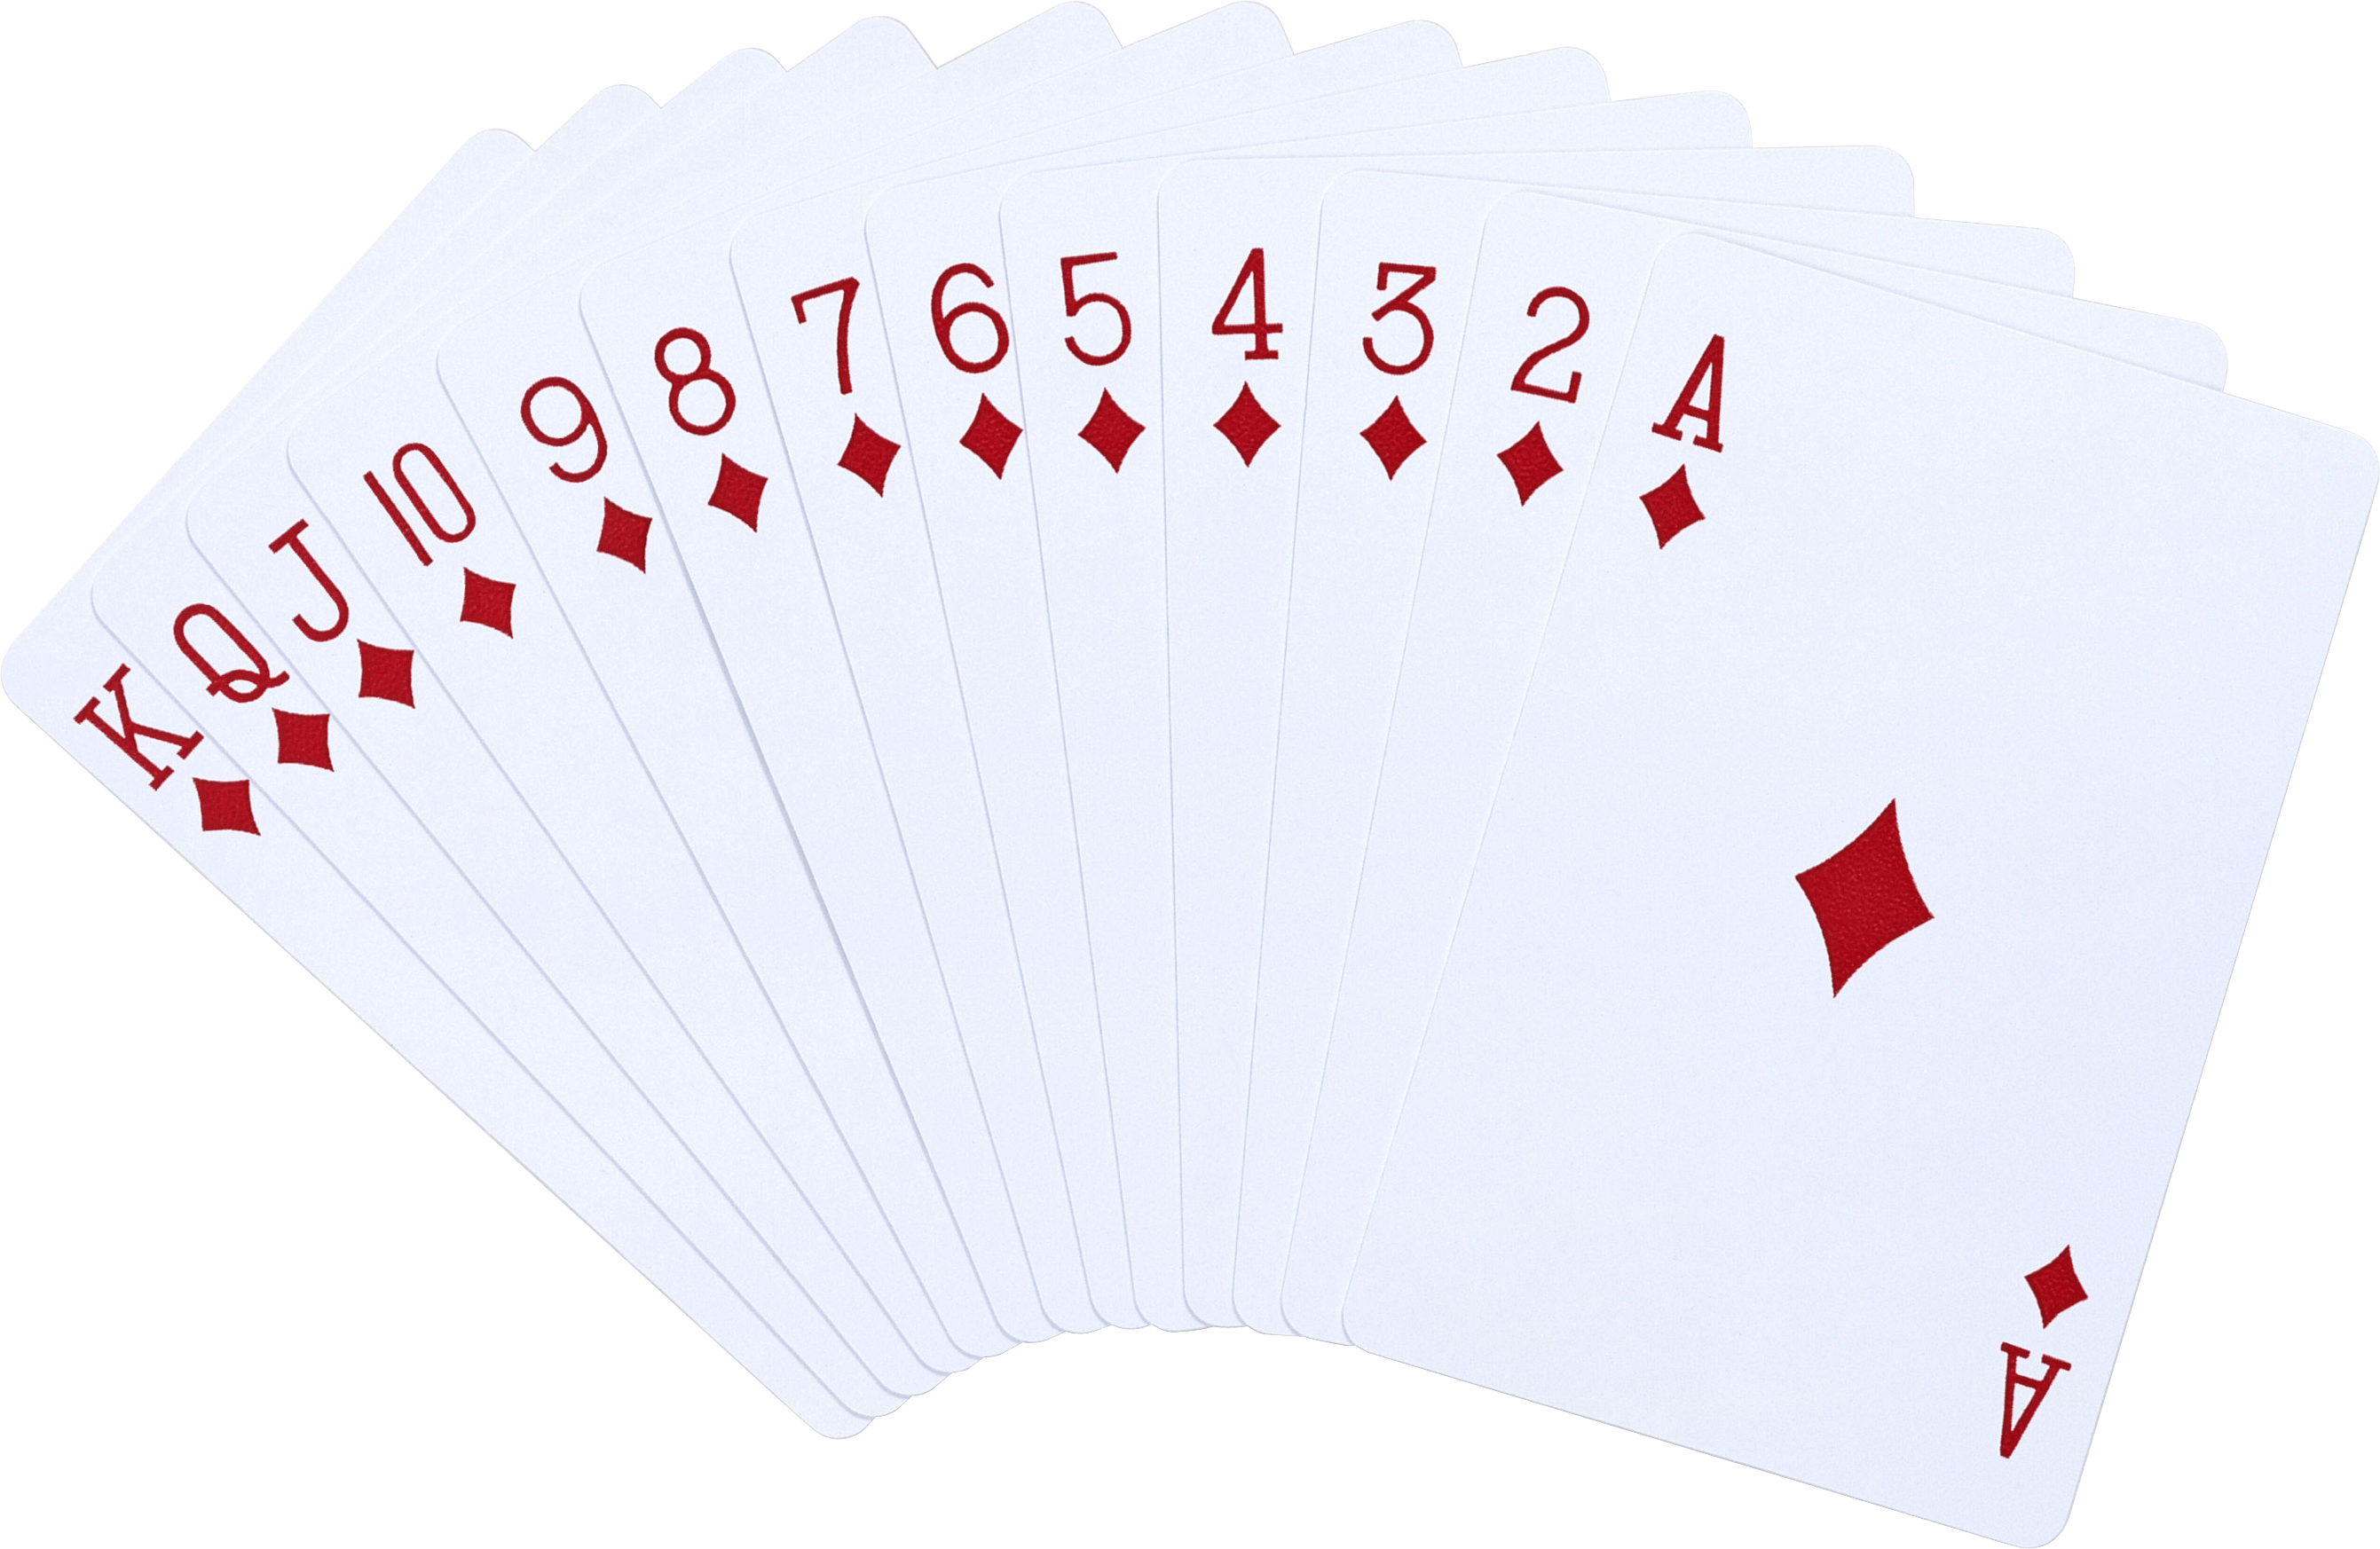 Fanned out cards png. All diamonds transparent stickpng